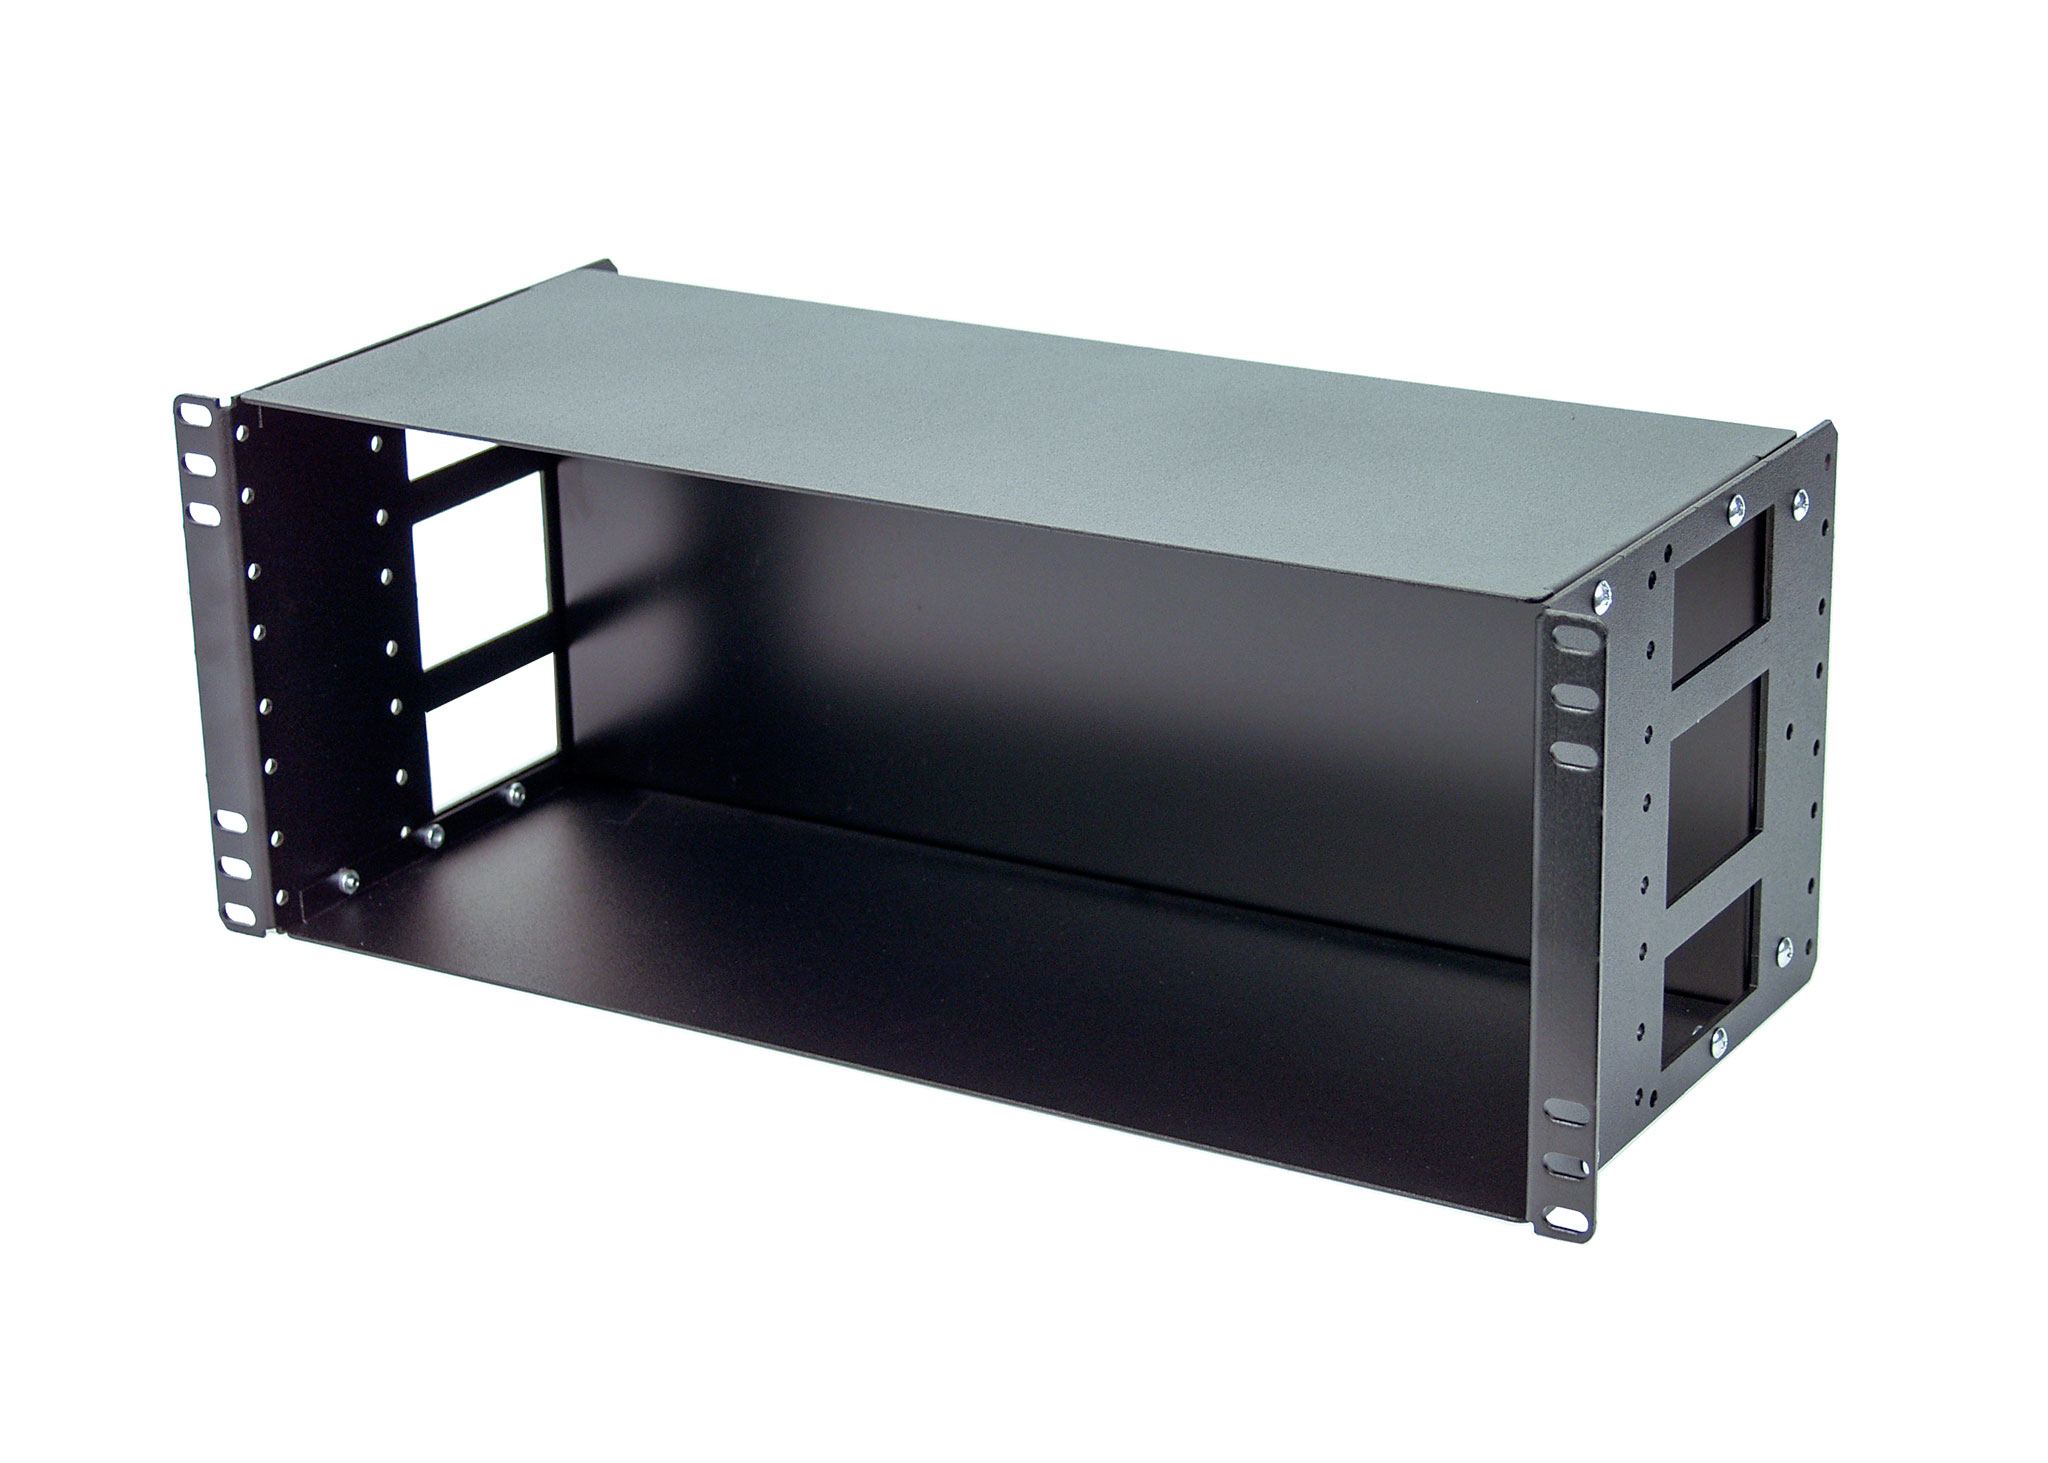 4U DIN Rail Enclosure for standard 19